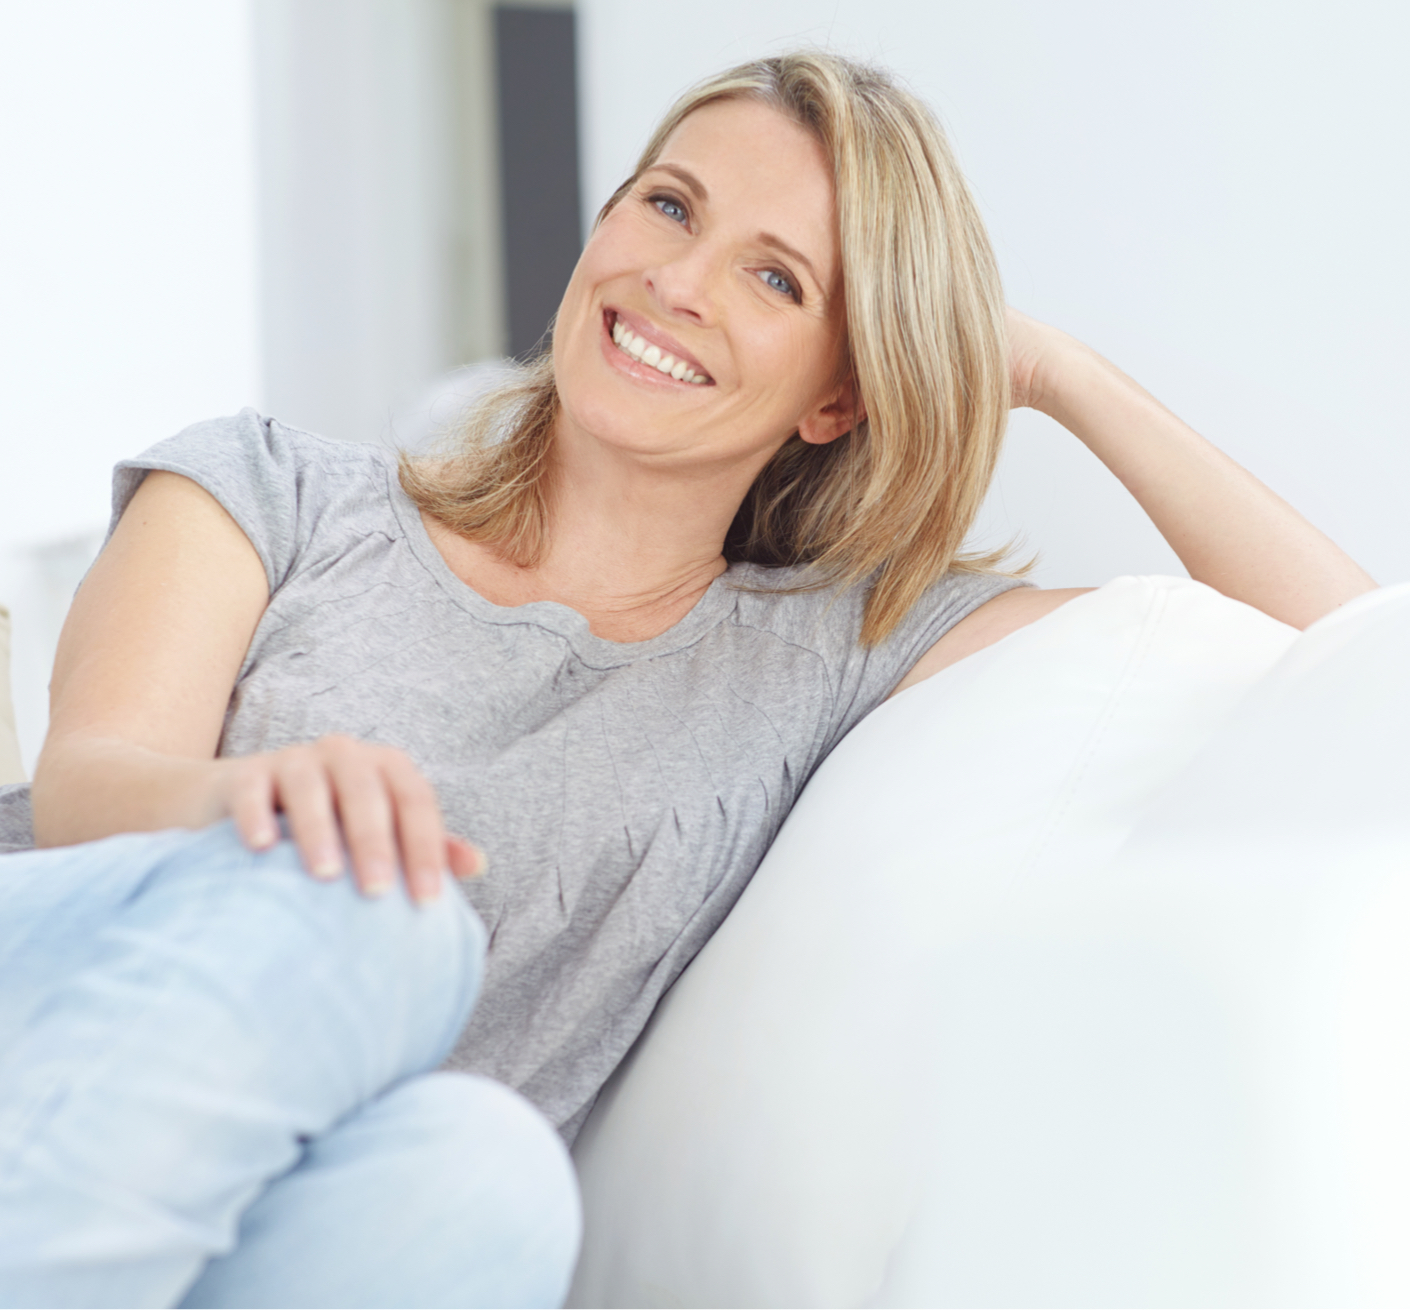 woman smiling sitting on a couch